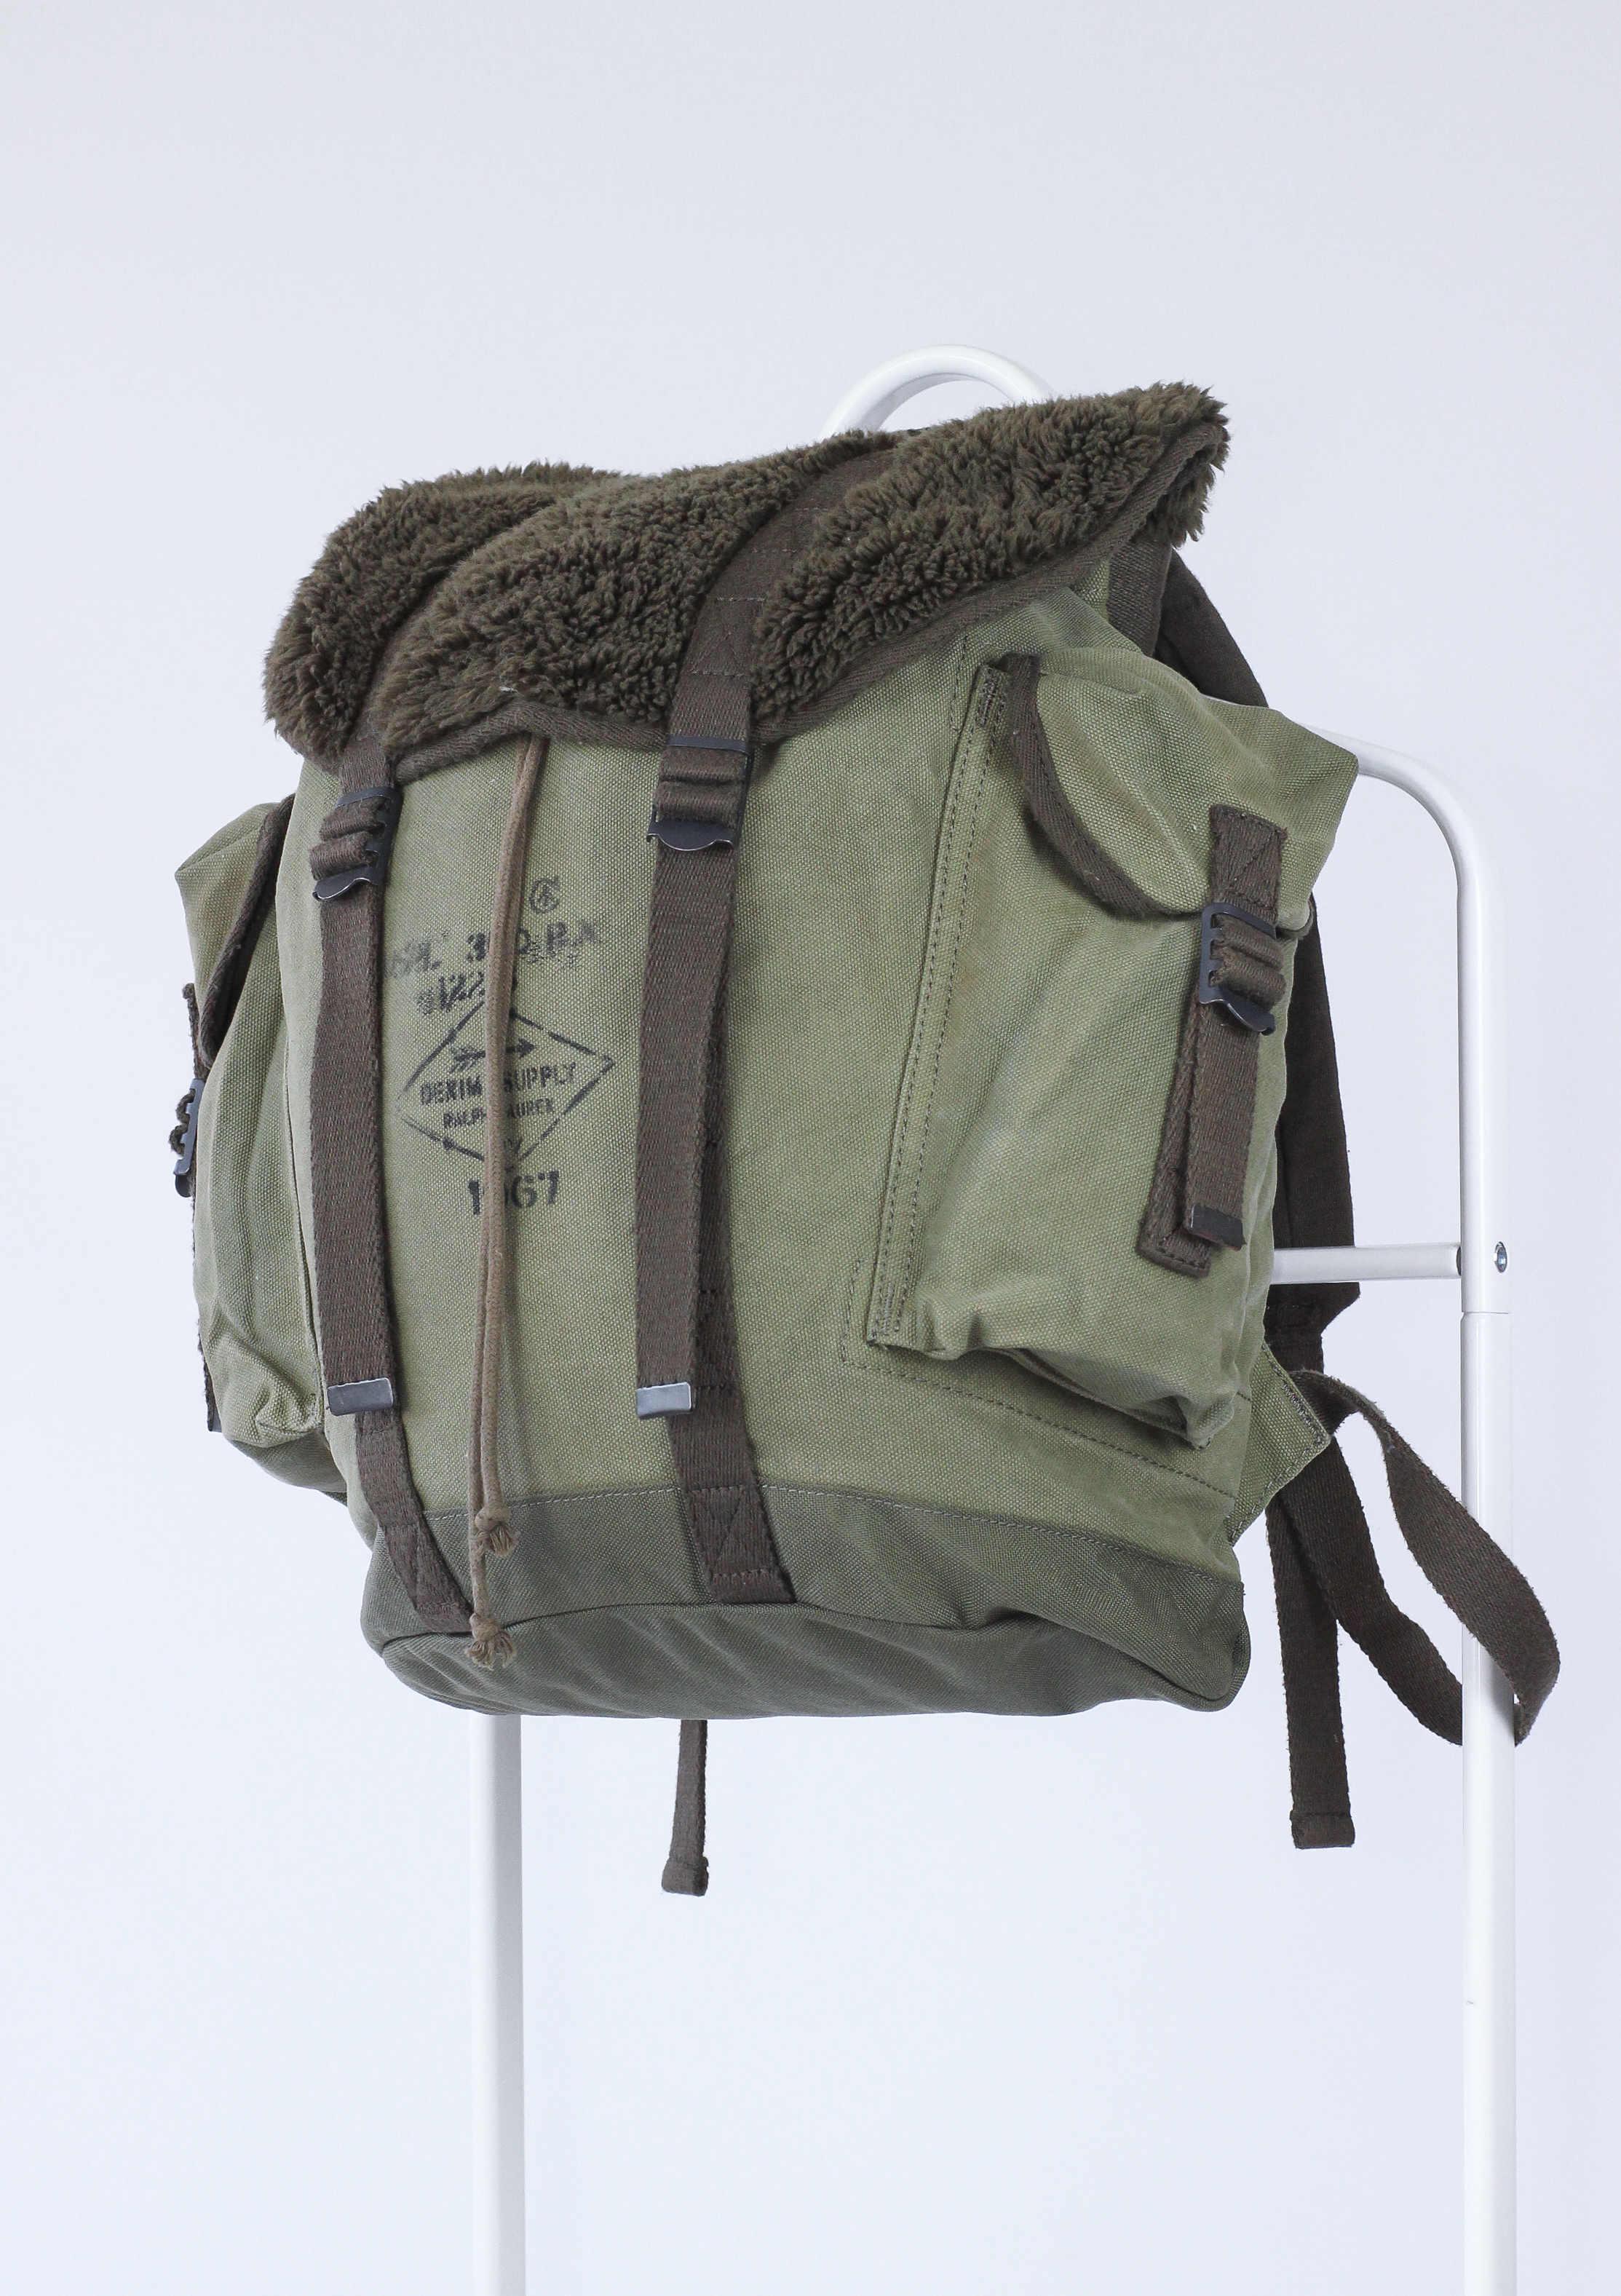 1b383a712157 Polo Ralph Lauren Polo Ralph Lauren Denim Supply Fur Rucksack Tote Backpack  Bag Duffel Army Military Size one size - Bags   Luggage for Sale - Grailed